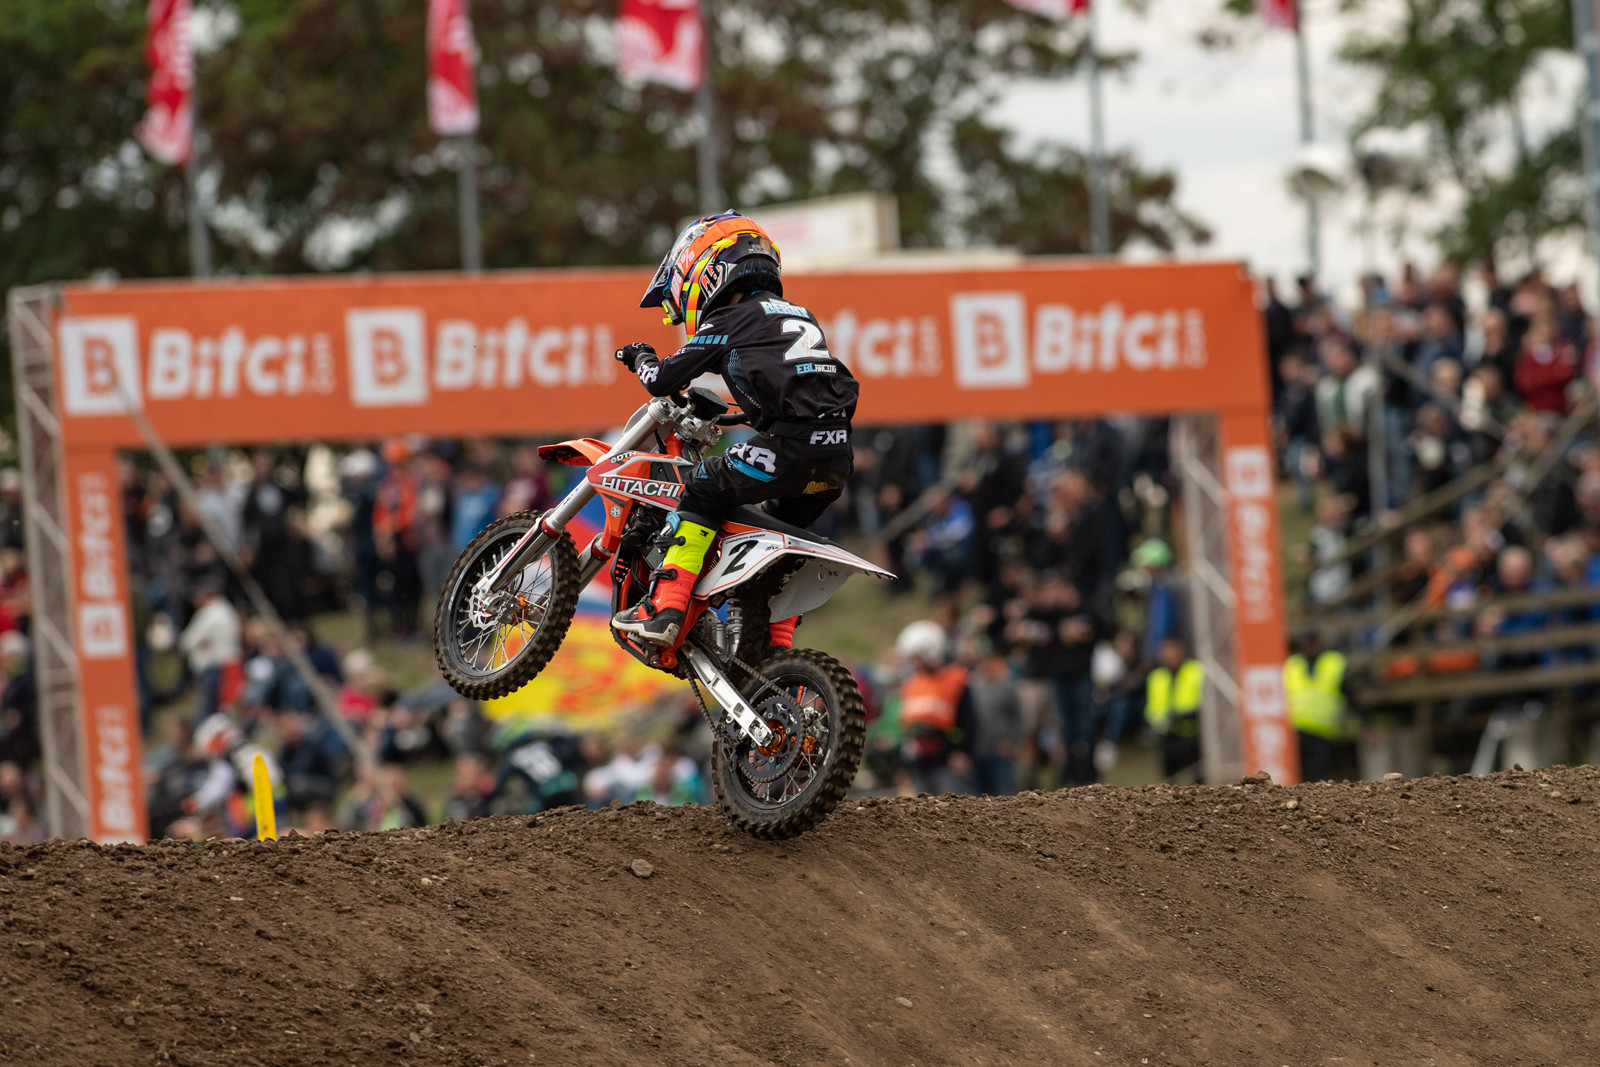 The FIM Junior eMotocross had its inaugural race with the MXE class racing KTM, Husqvarna, and GASGAS electrified versions of their many moto bikes.